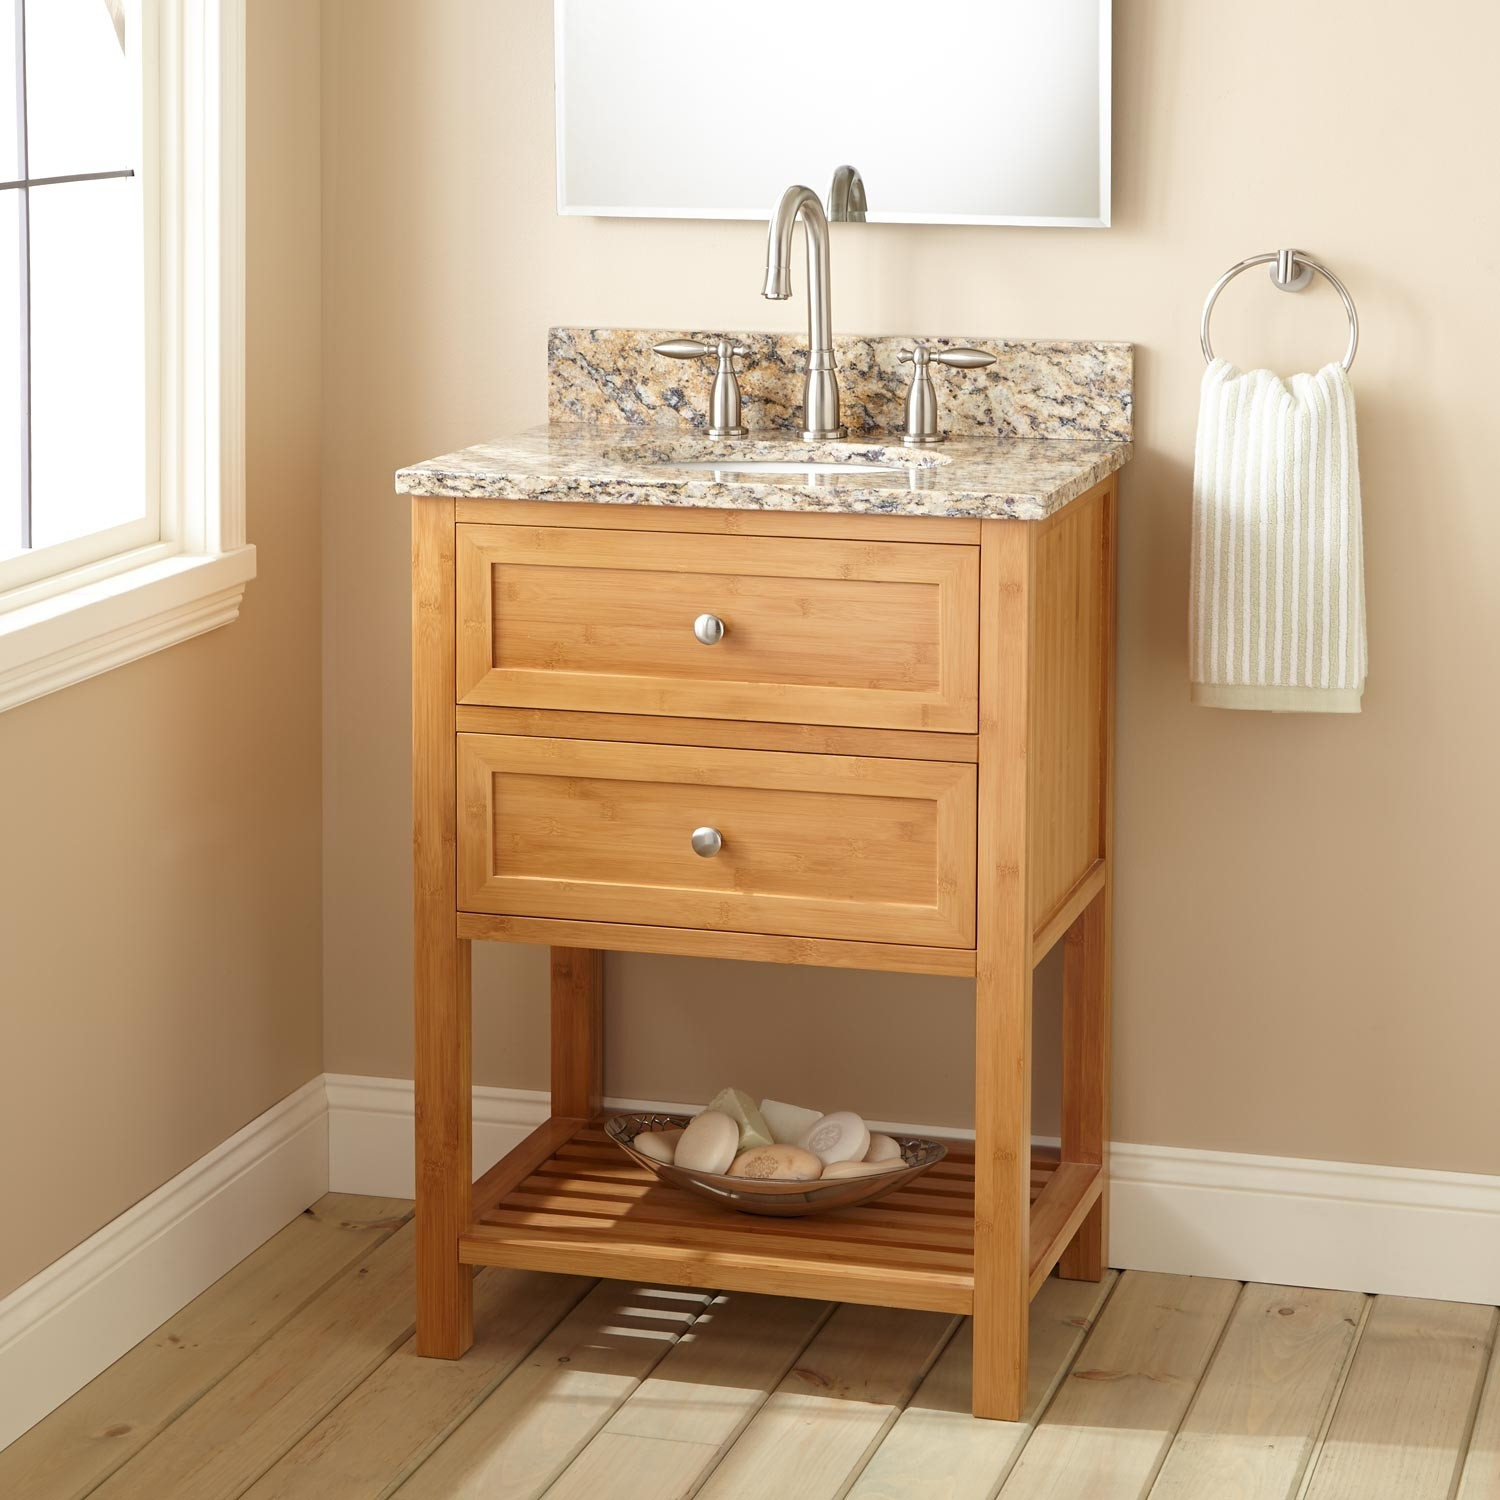 Narrow Depth Bathroom Vanity Sink